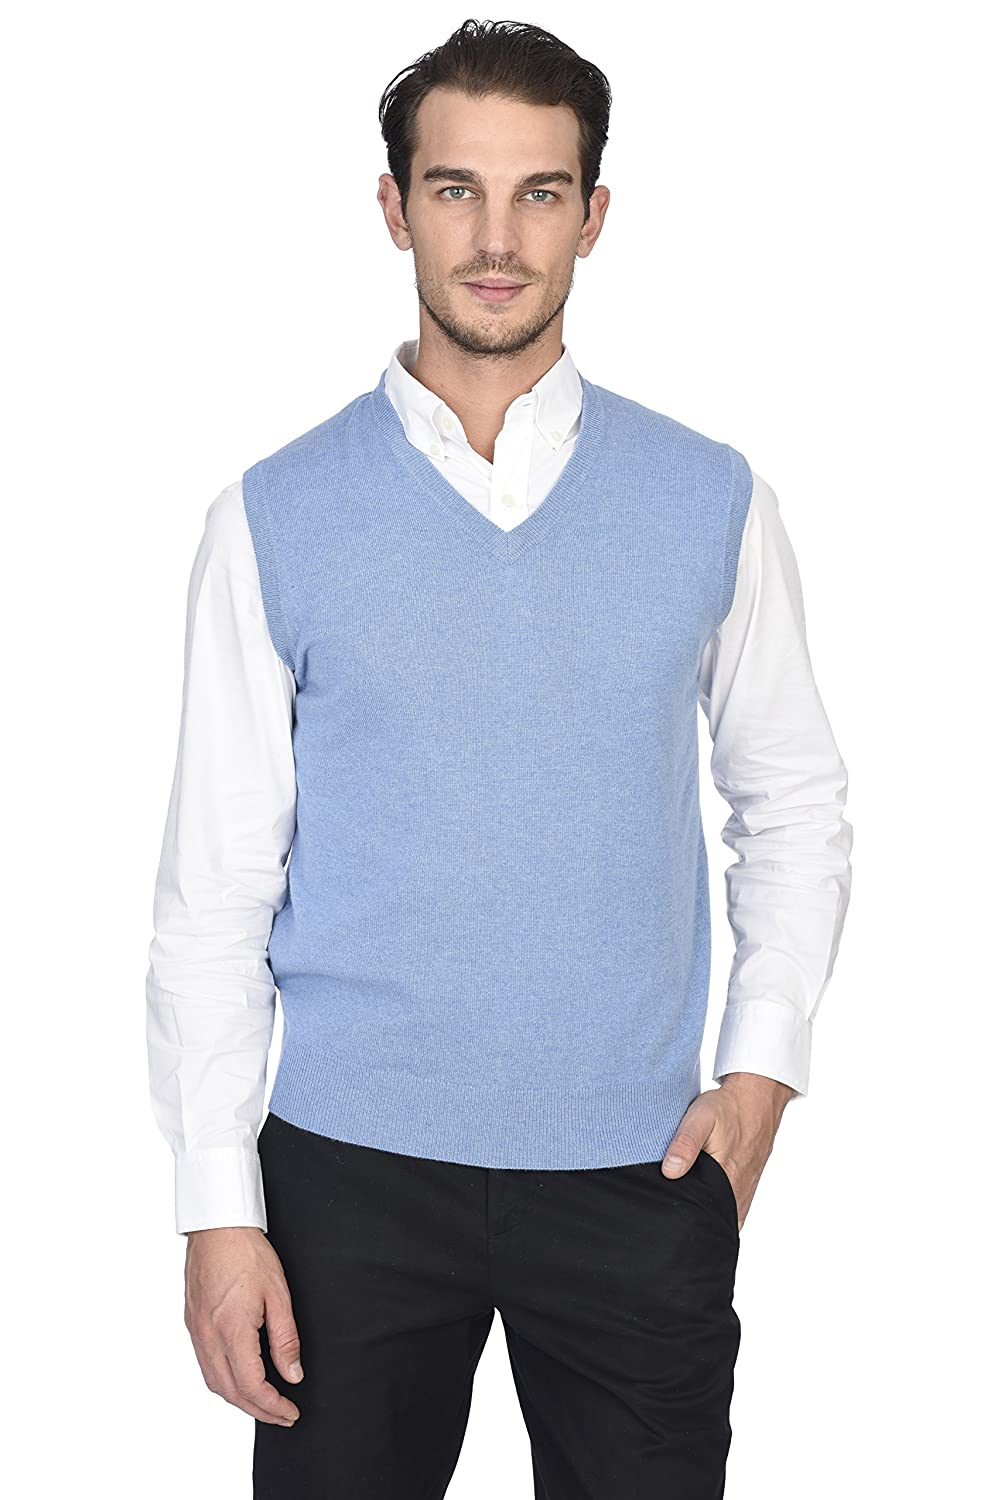 State Cashmere Men's 100% Pure Cashmere Regular Fit Pullover Casual Sweater Vest ST3617